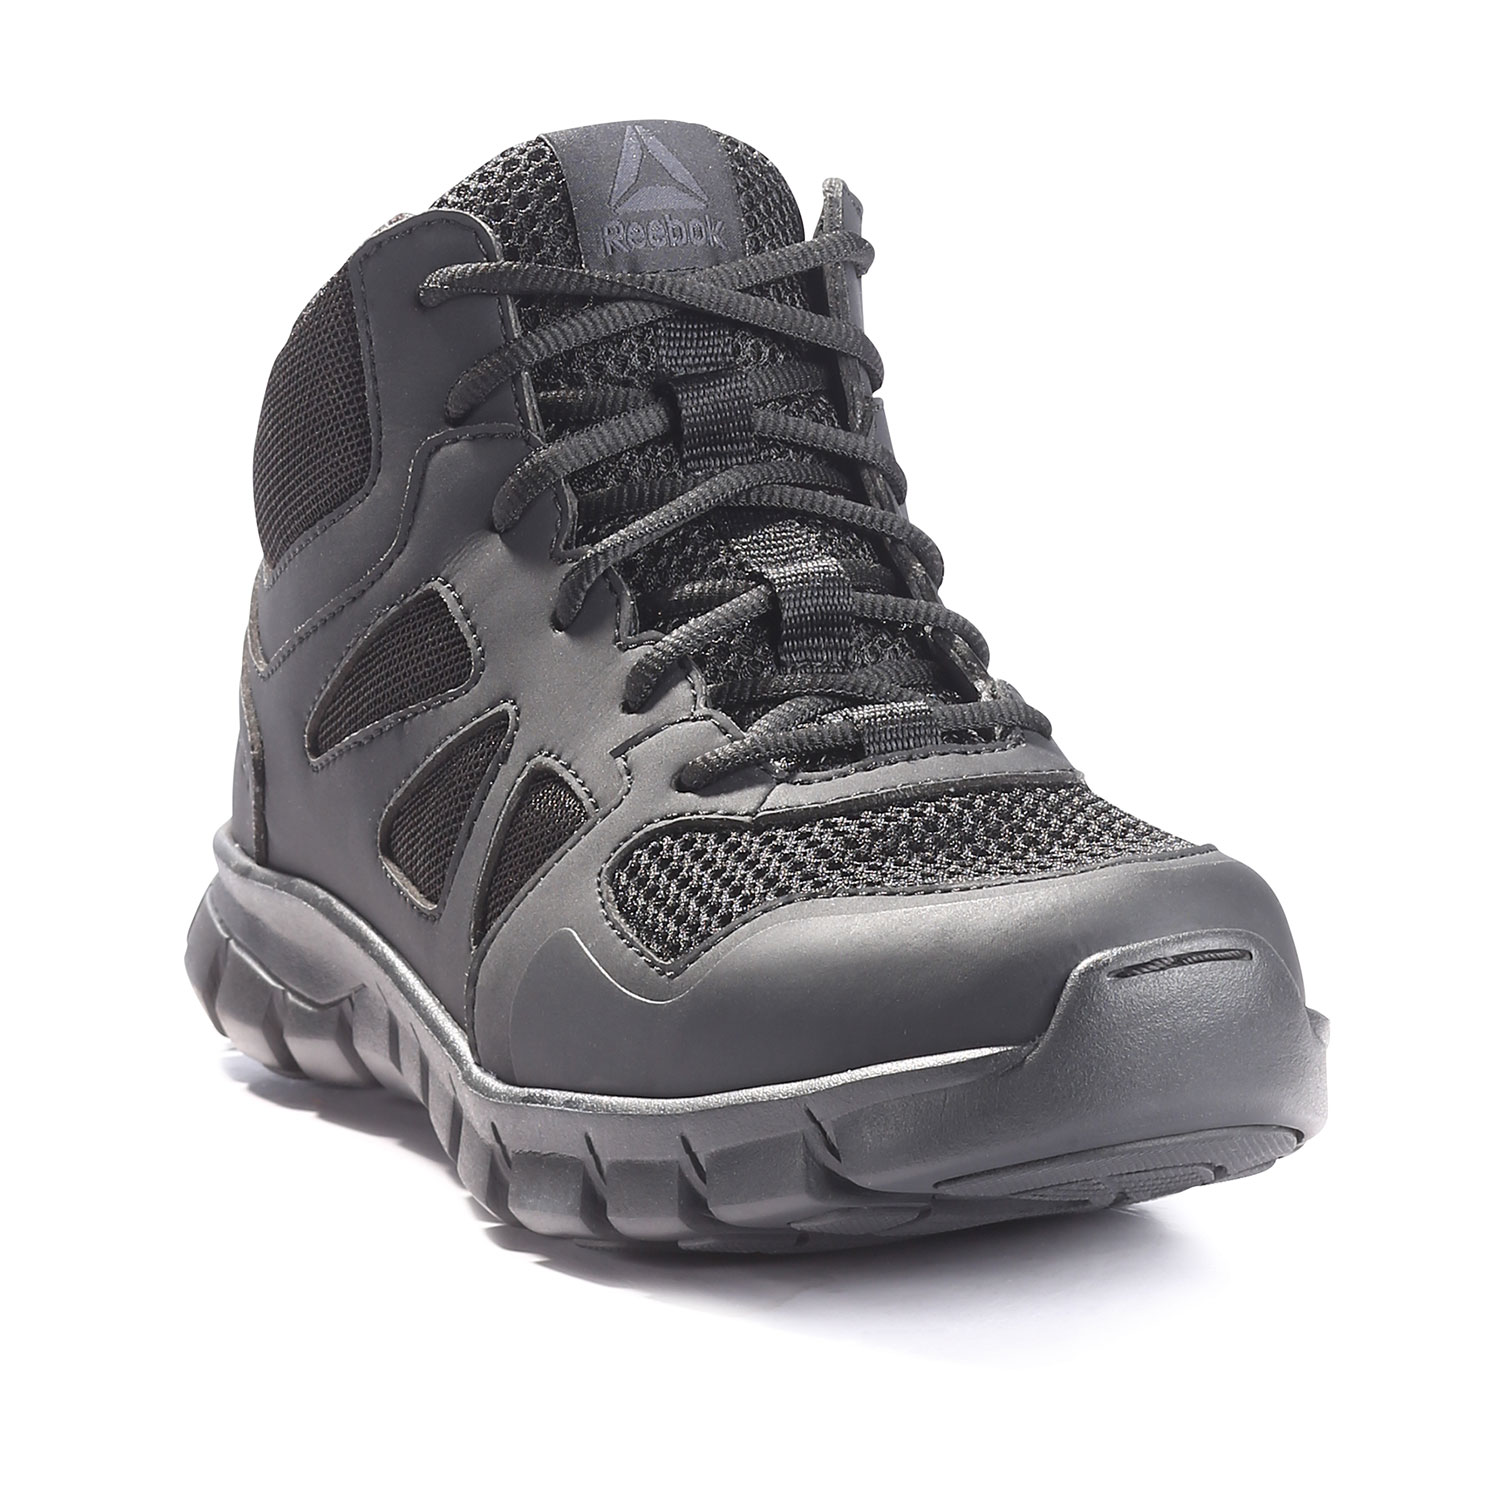 Reebok Women's Sublite Cushion Tactical Mid